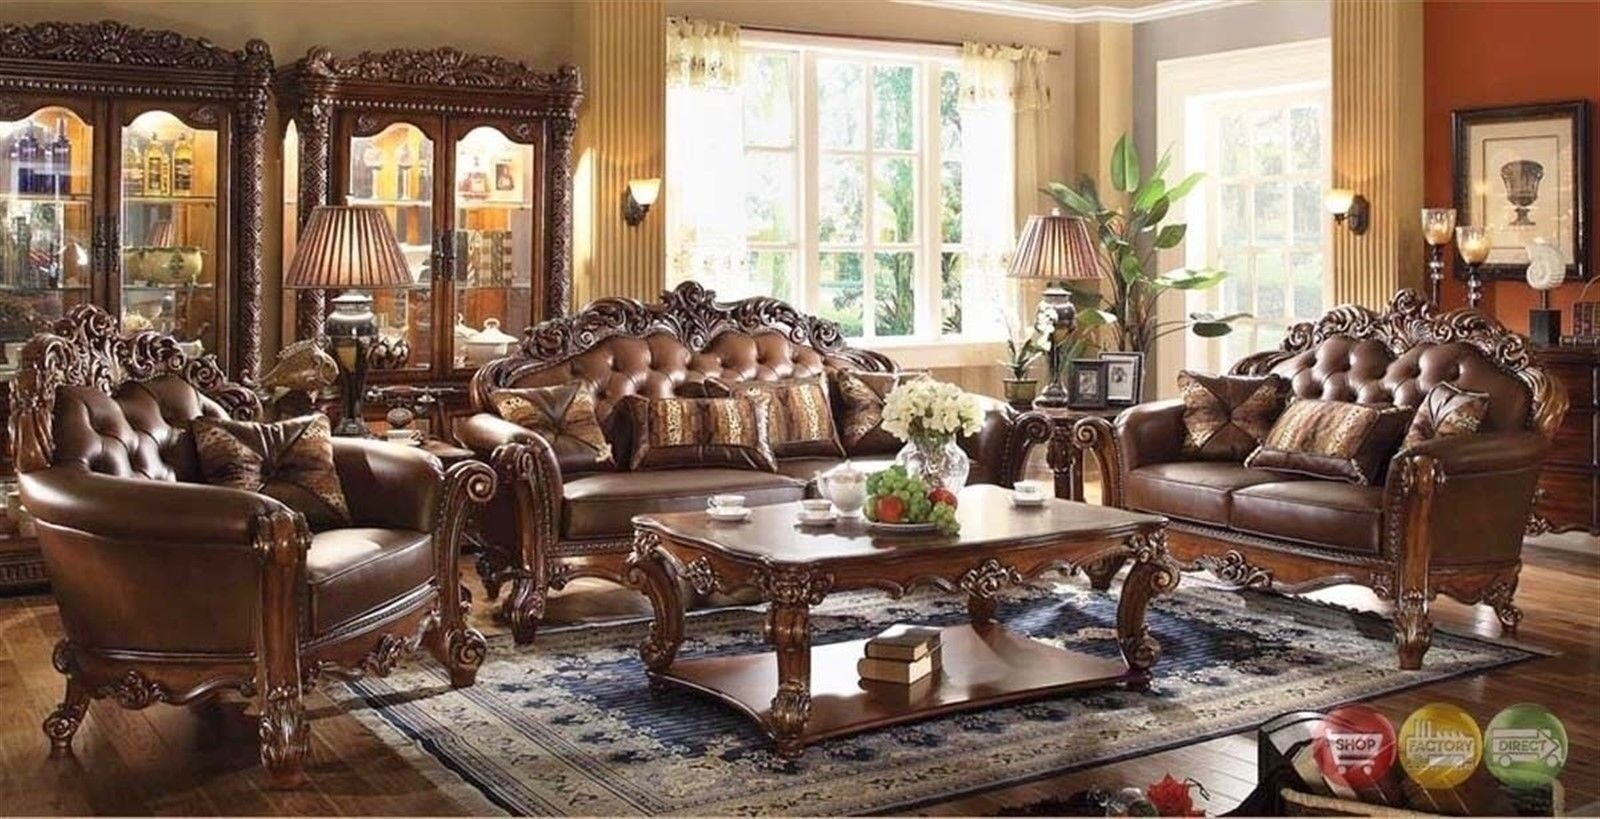 Details About Vendome Traditional Dark Wood 3pc Formal Living Room Set Sofa Loveseat Chair